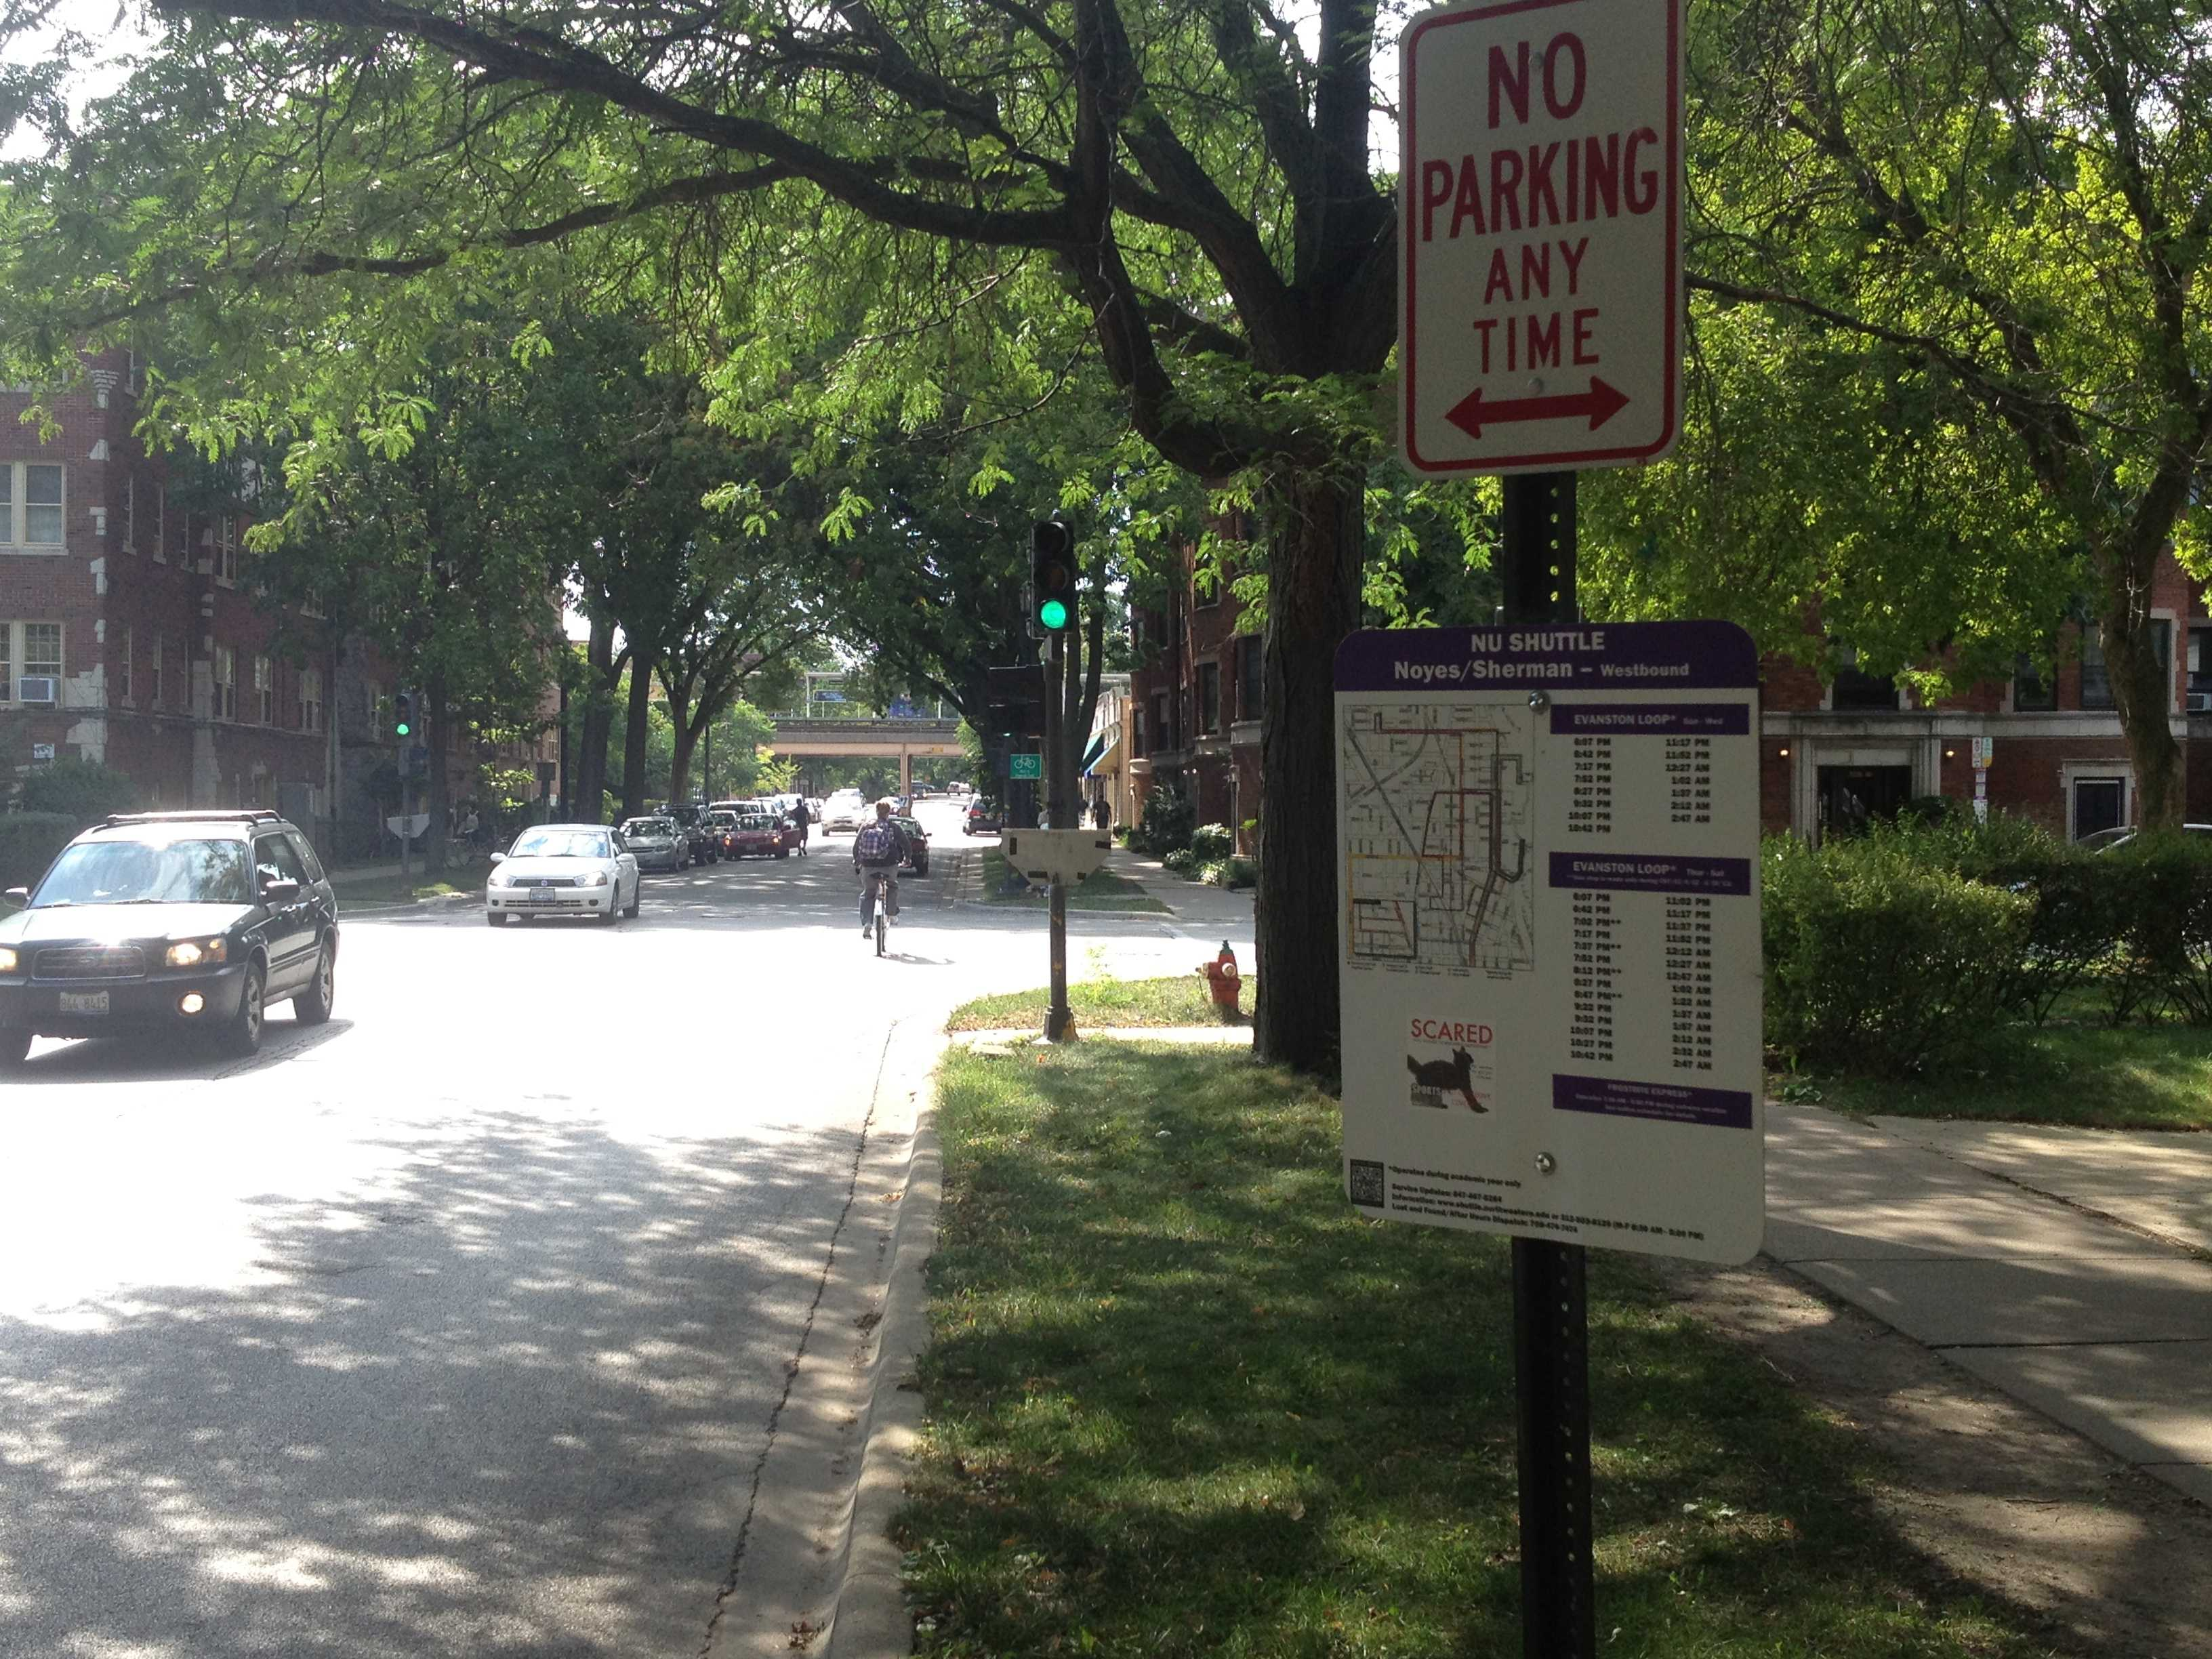 Ald. Judy Fiske (1st) said Monday night that the Evanston Loop shuttle stop near the intersection of Sherman Avenue and Noyes Street is causing headaches for nearby residents. A subcommittee has been formed to take up their concerns.